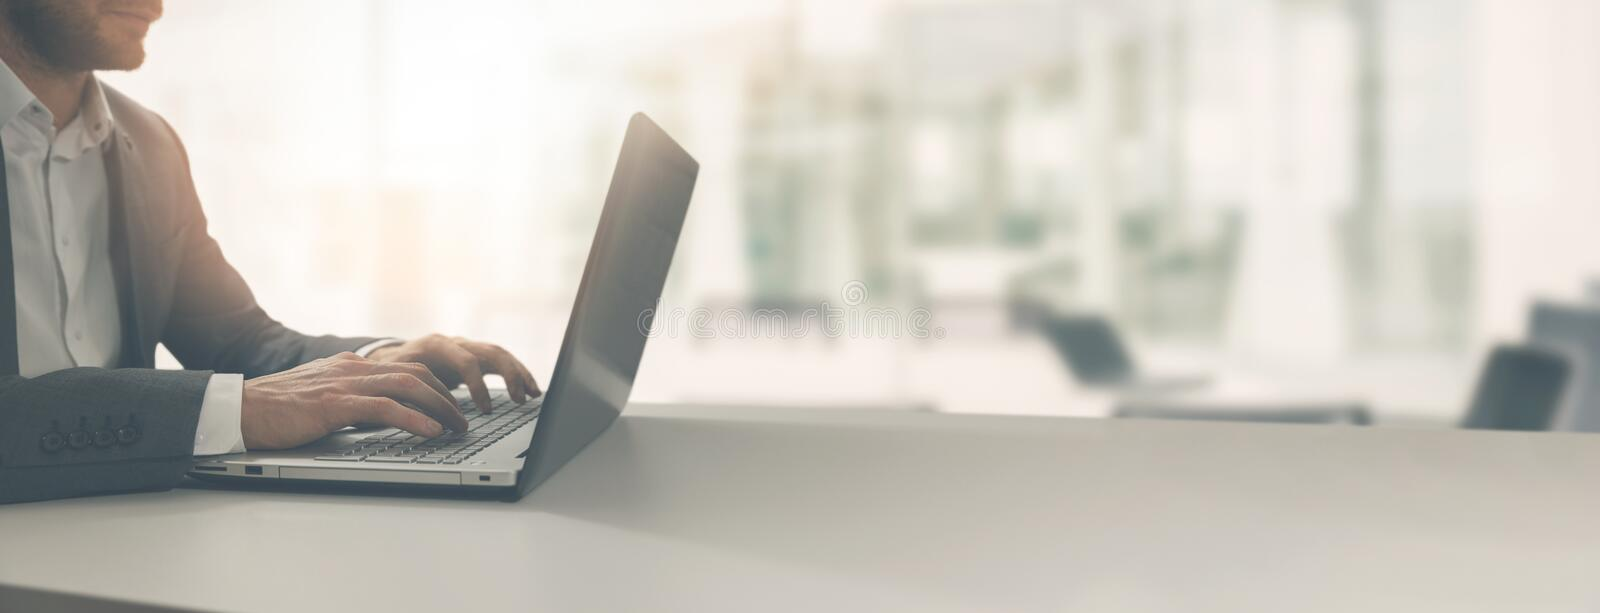 young businessman working on laptop in modern office royalty free stock photography